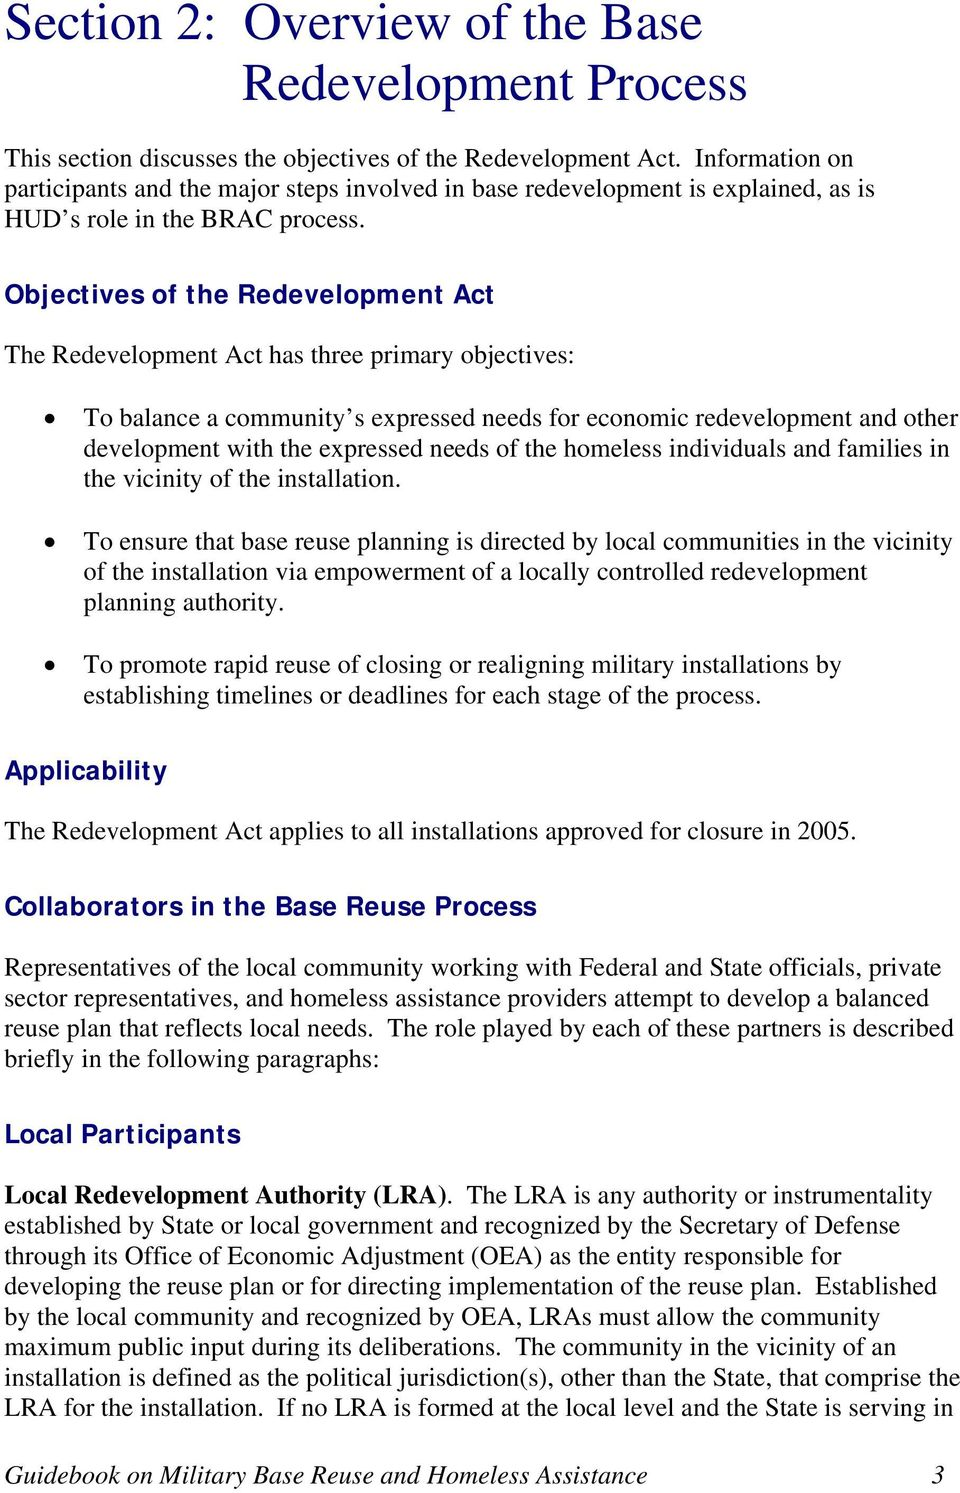 Objectives of the Redevelopment Act The Redevelopment Act has three primary objectives: To balance a community s expressed needs for economic redevelopment and other development with the expressed